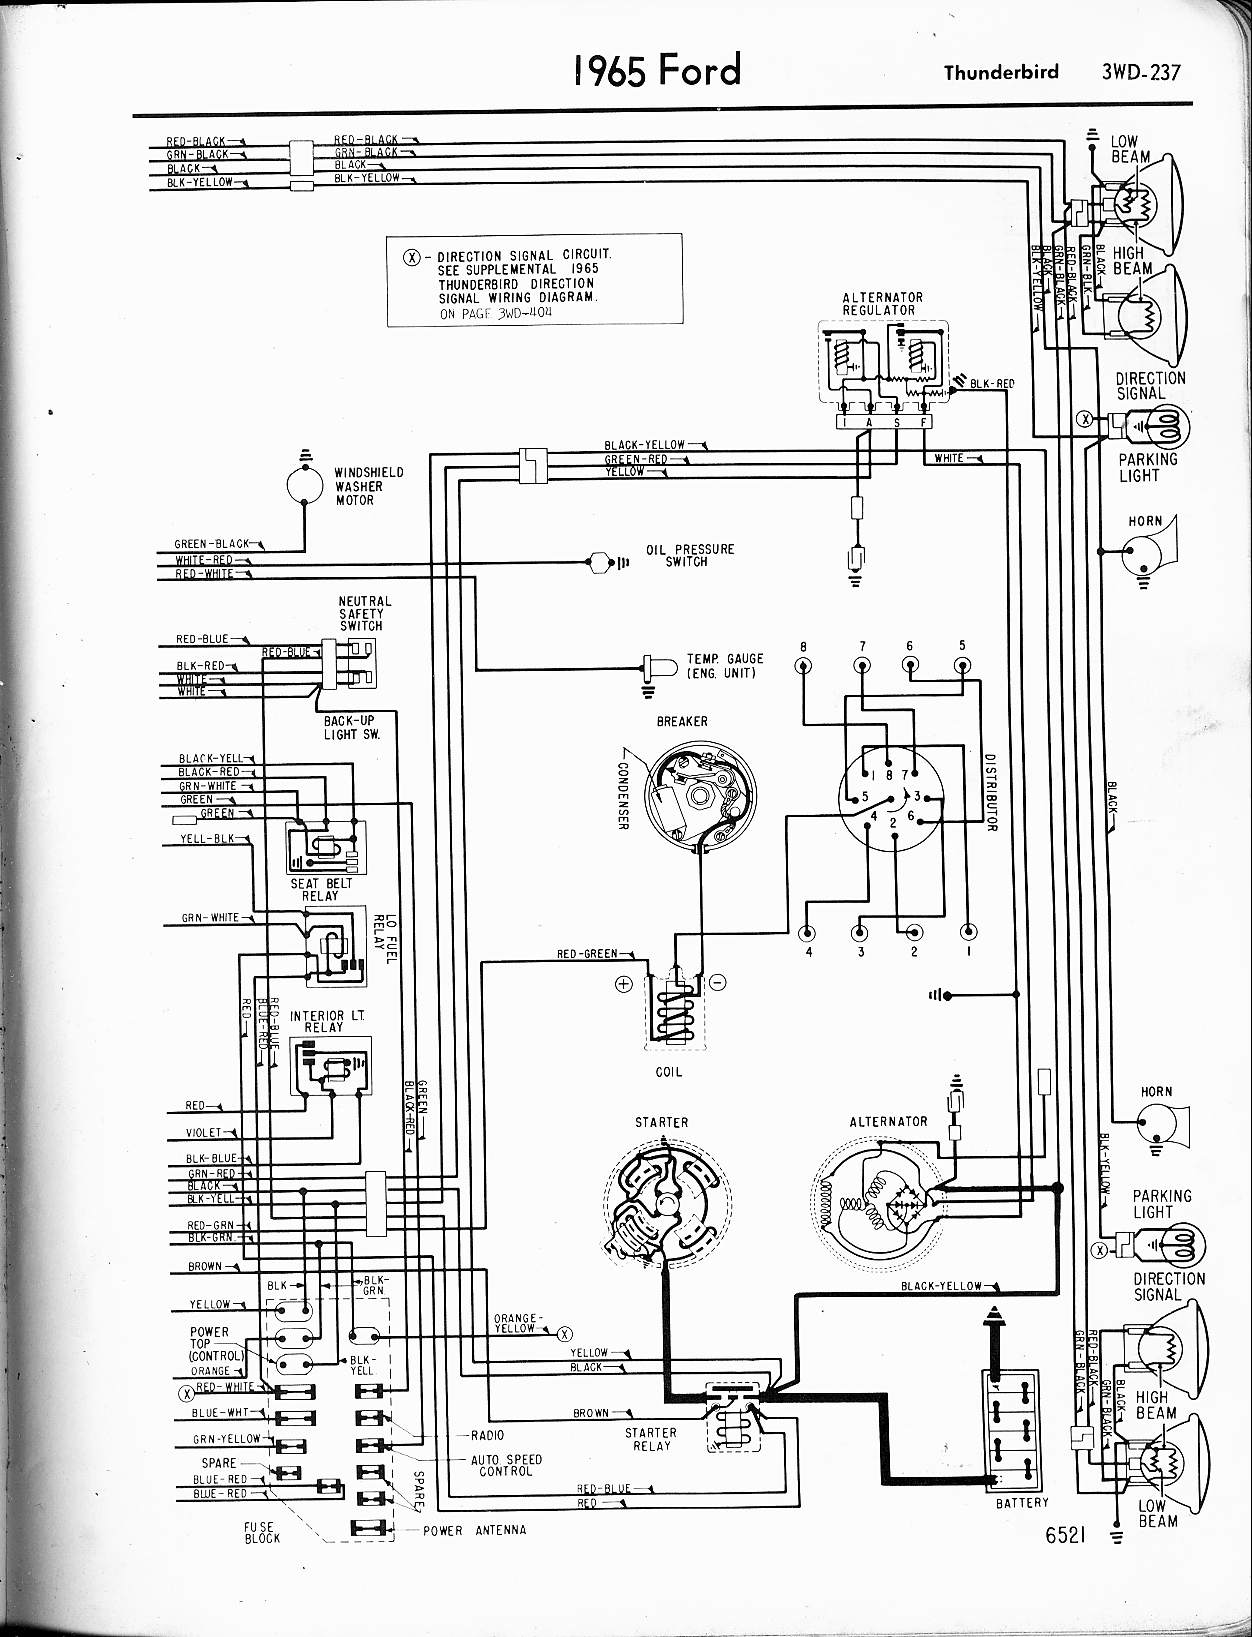 hight resolution of 1956 ford wiring diagram simple wiring diagram 1970 torino gt 1970 fairlane wiring diagram